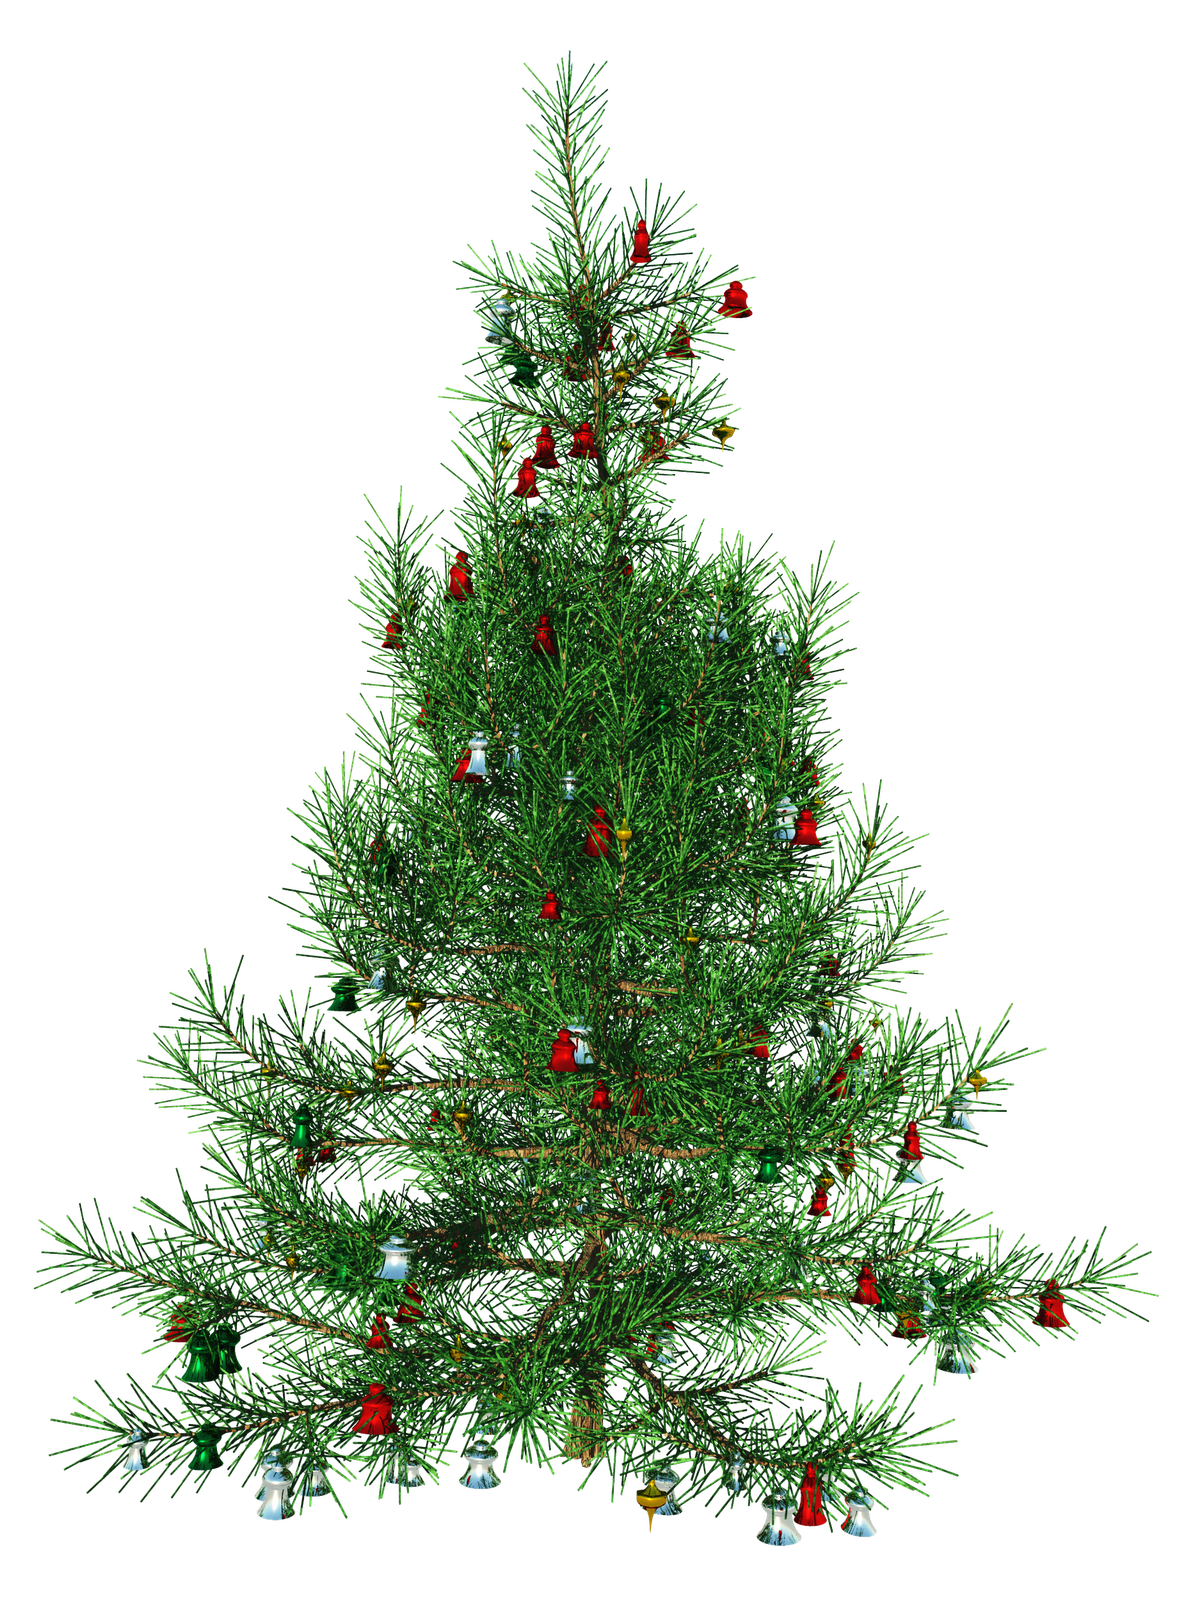 Png Format Images Of Christmas Tree